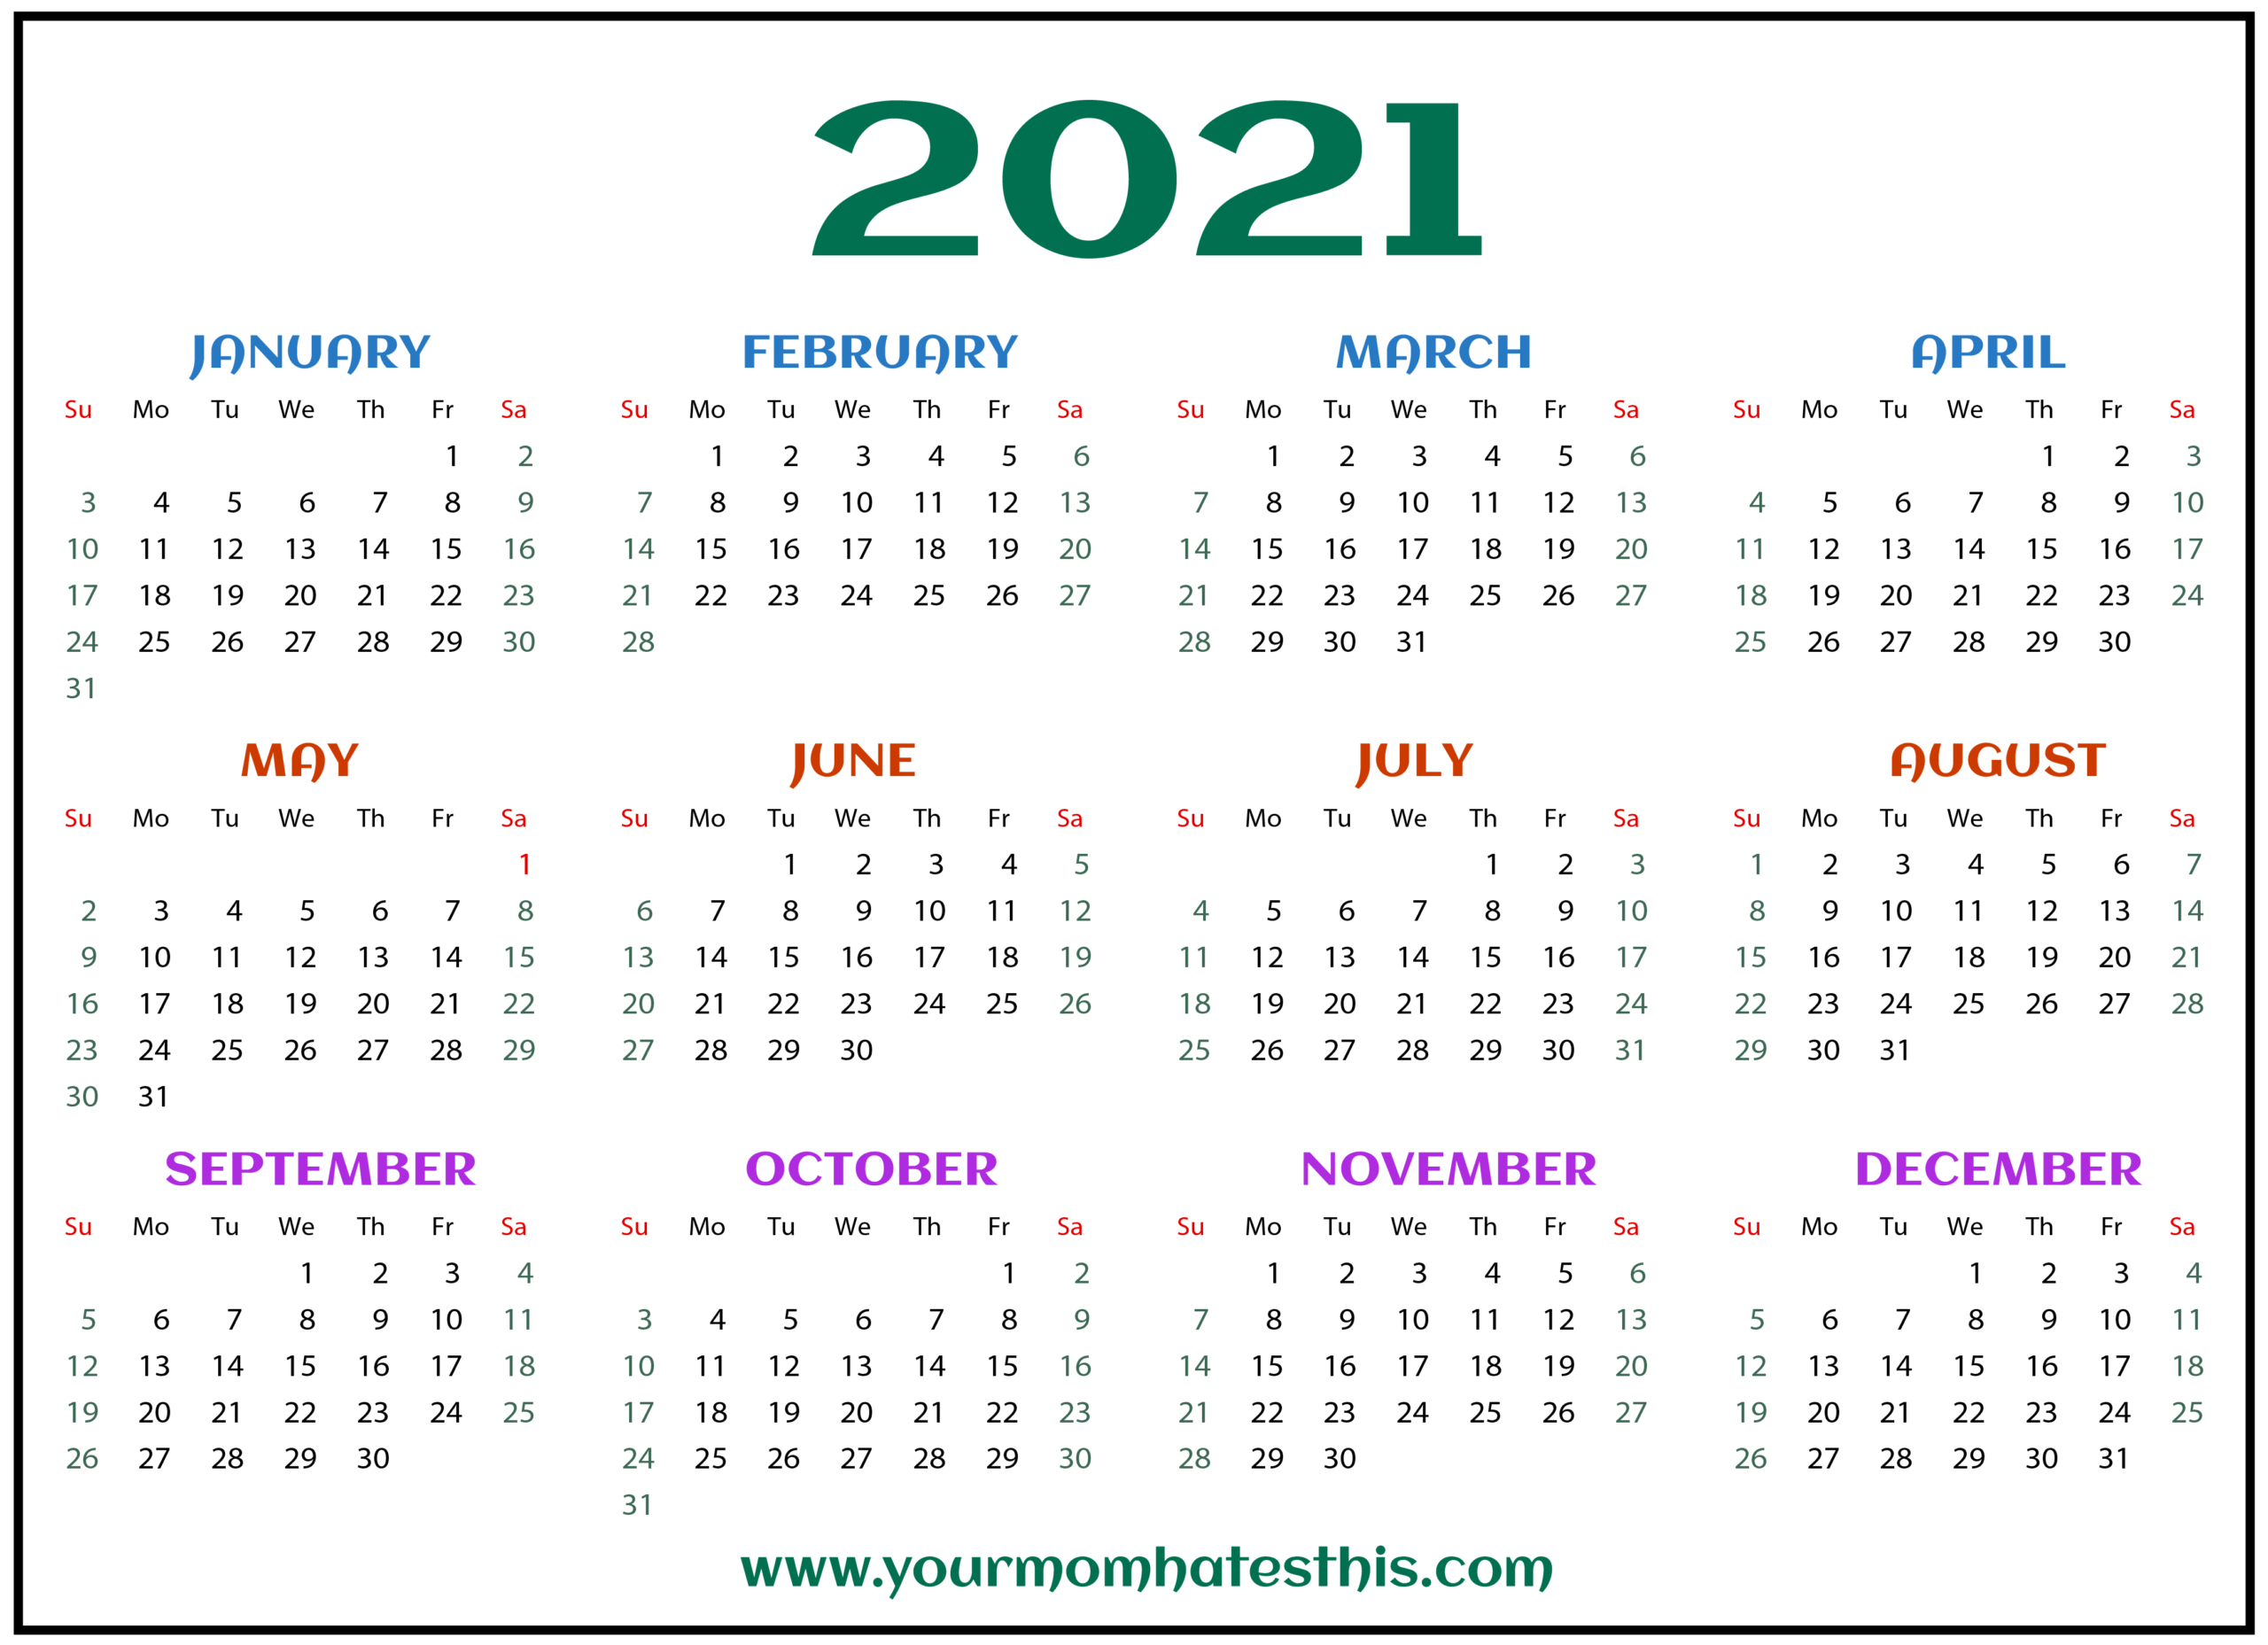 Get 2021 Calendars For Business Purposes